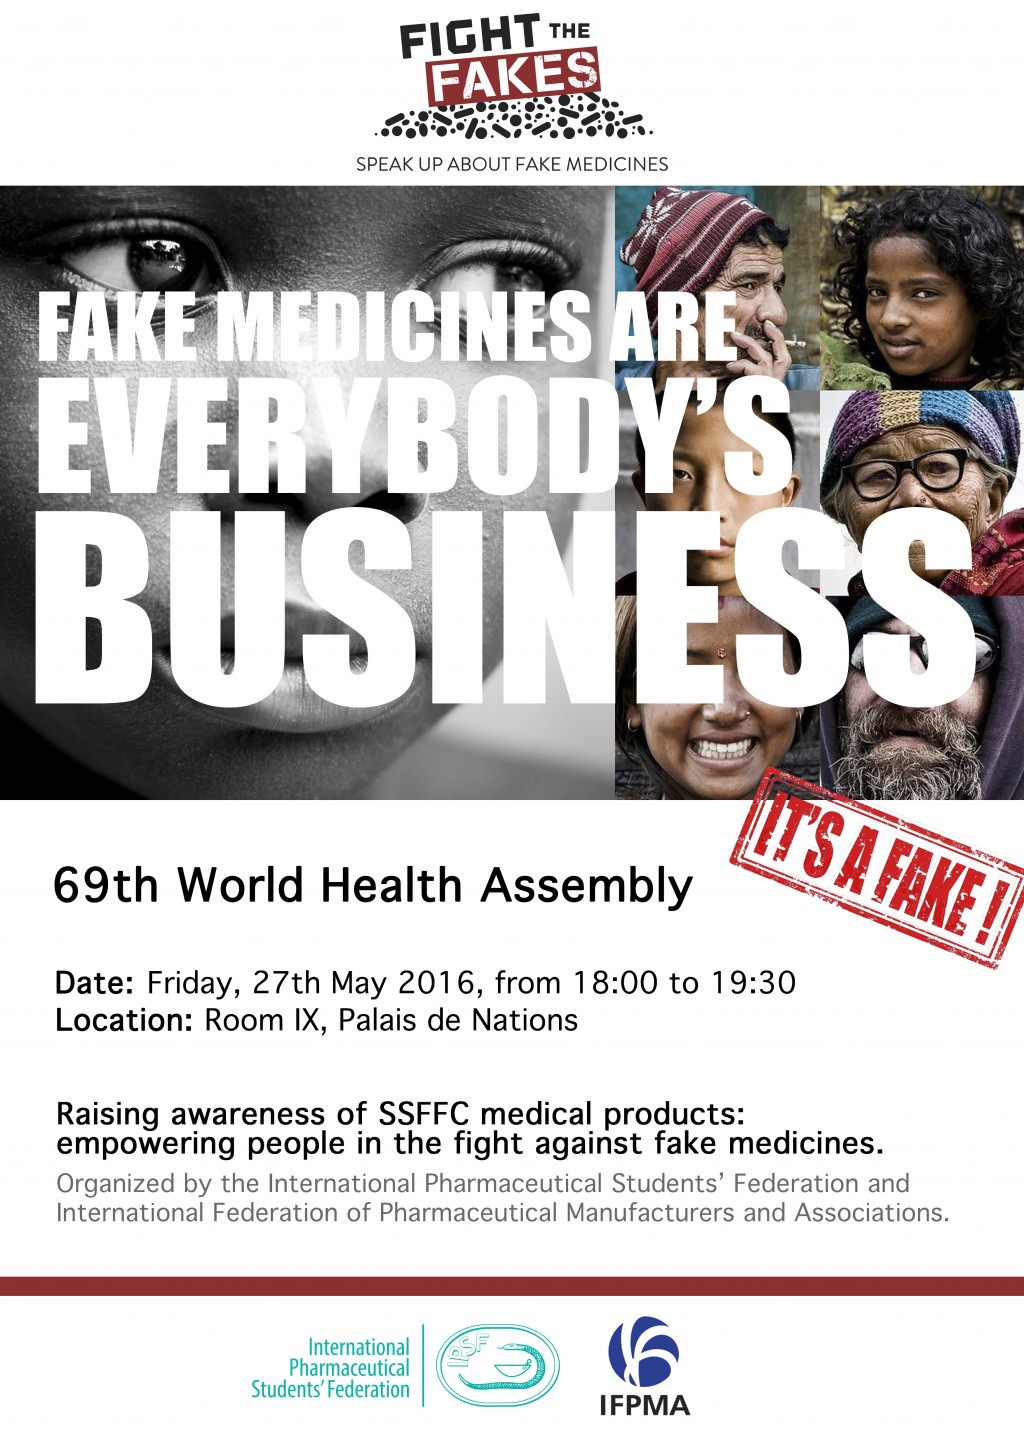 Fight the Fakes at World Health Assembly 69